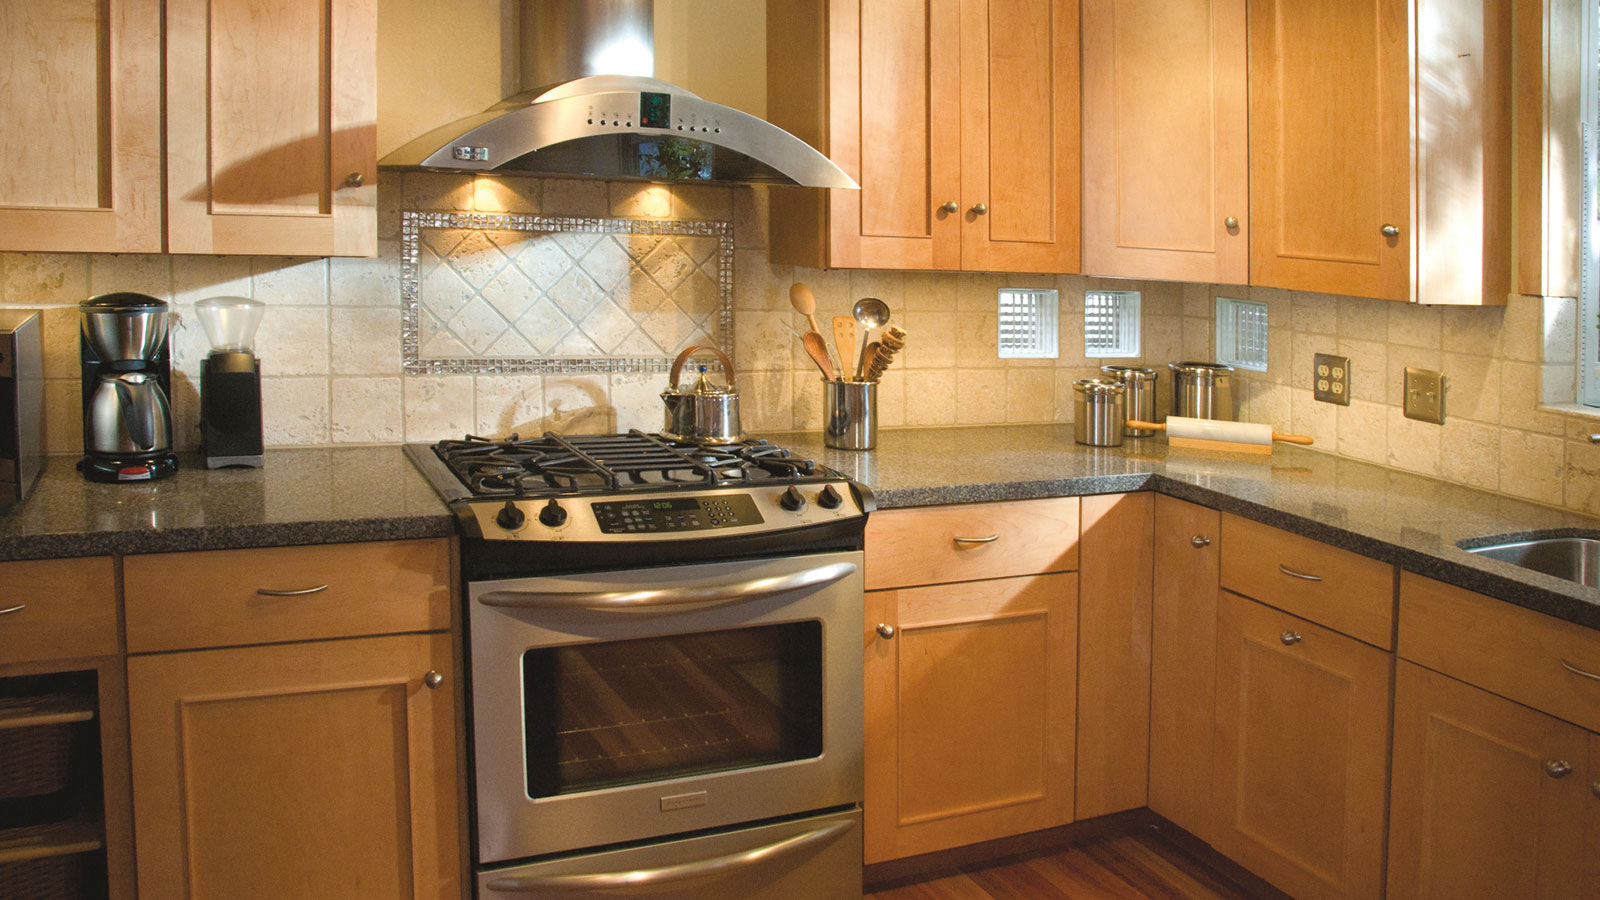 Kitchen Design Light Maple Cabinets - Small House Interior ... on Kitchen Backsplash With Natural Maple Cabinets  id=85445